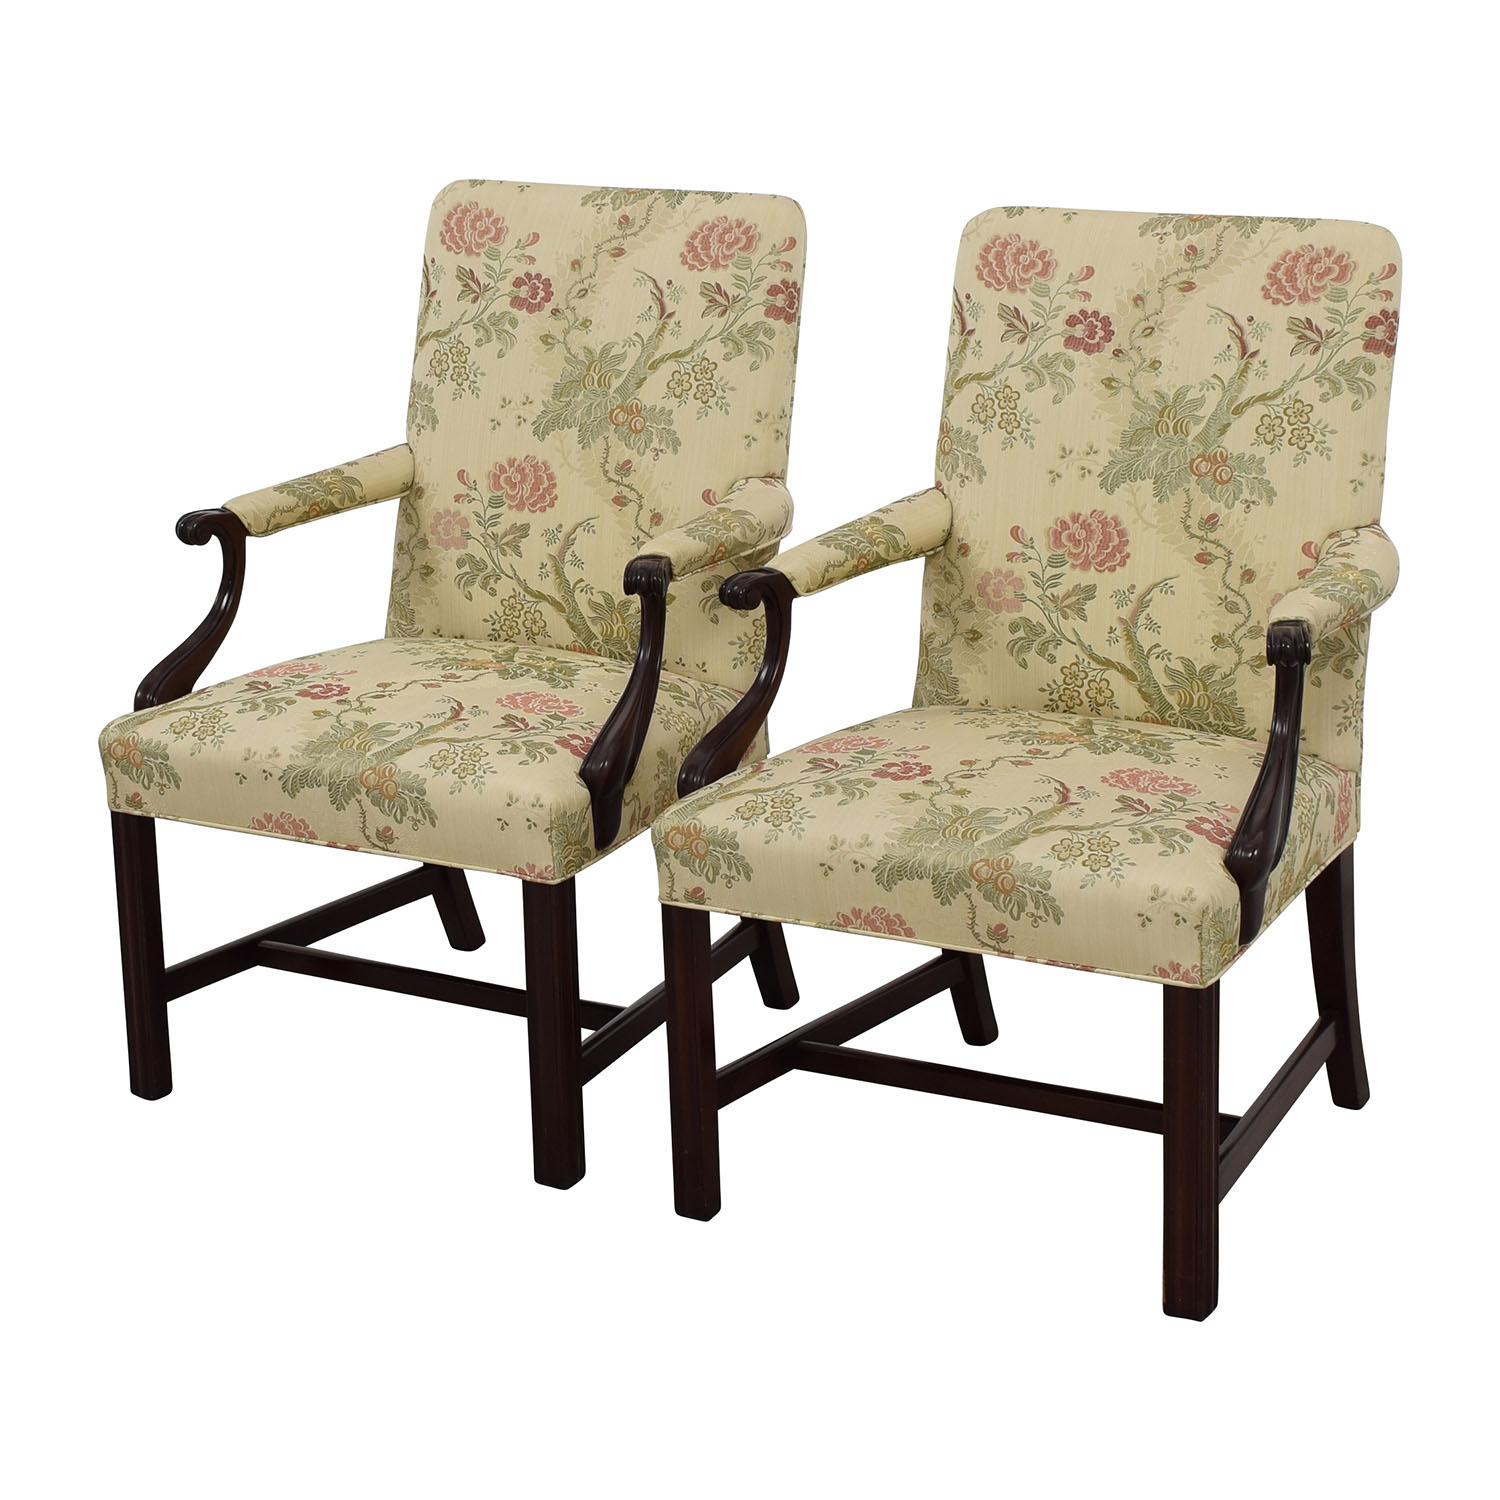 Armed Accent Chairs 90 Off Traditional Upholstered Arm Chair Set Of Two